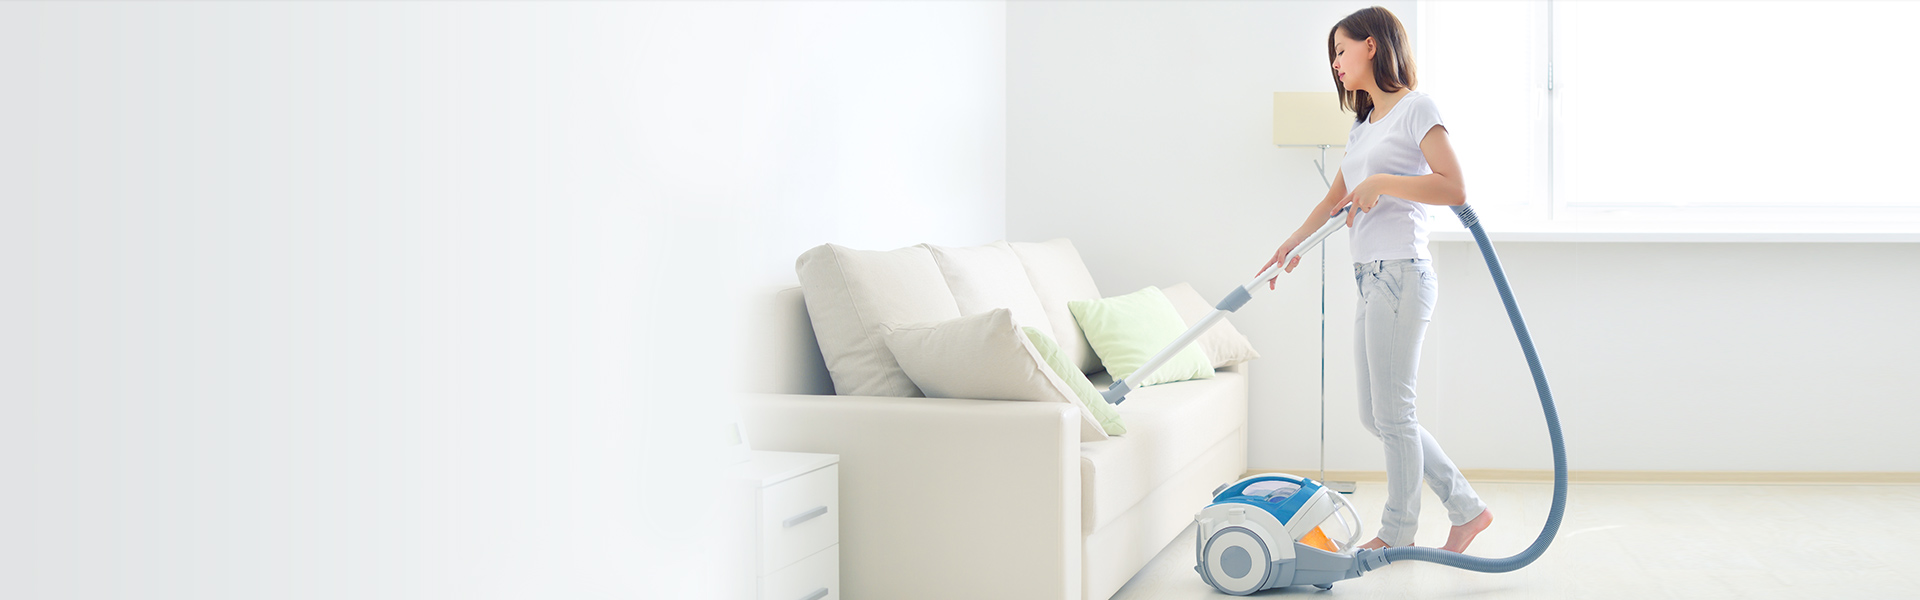 Landlord cleaning services